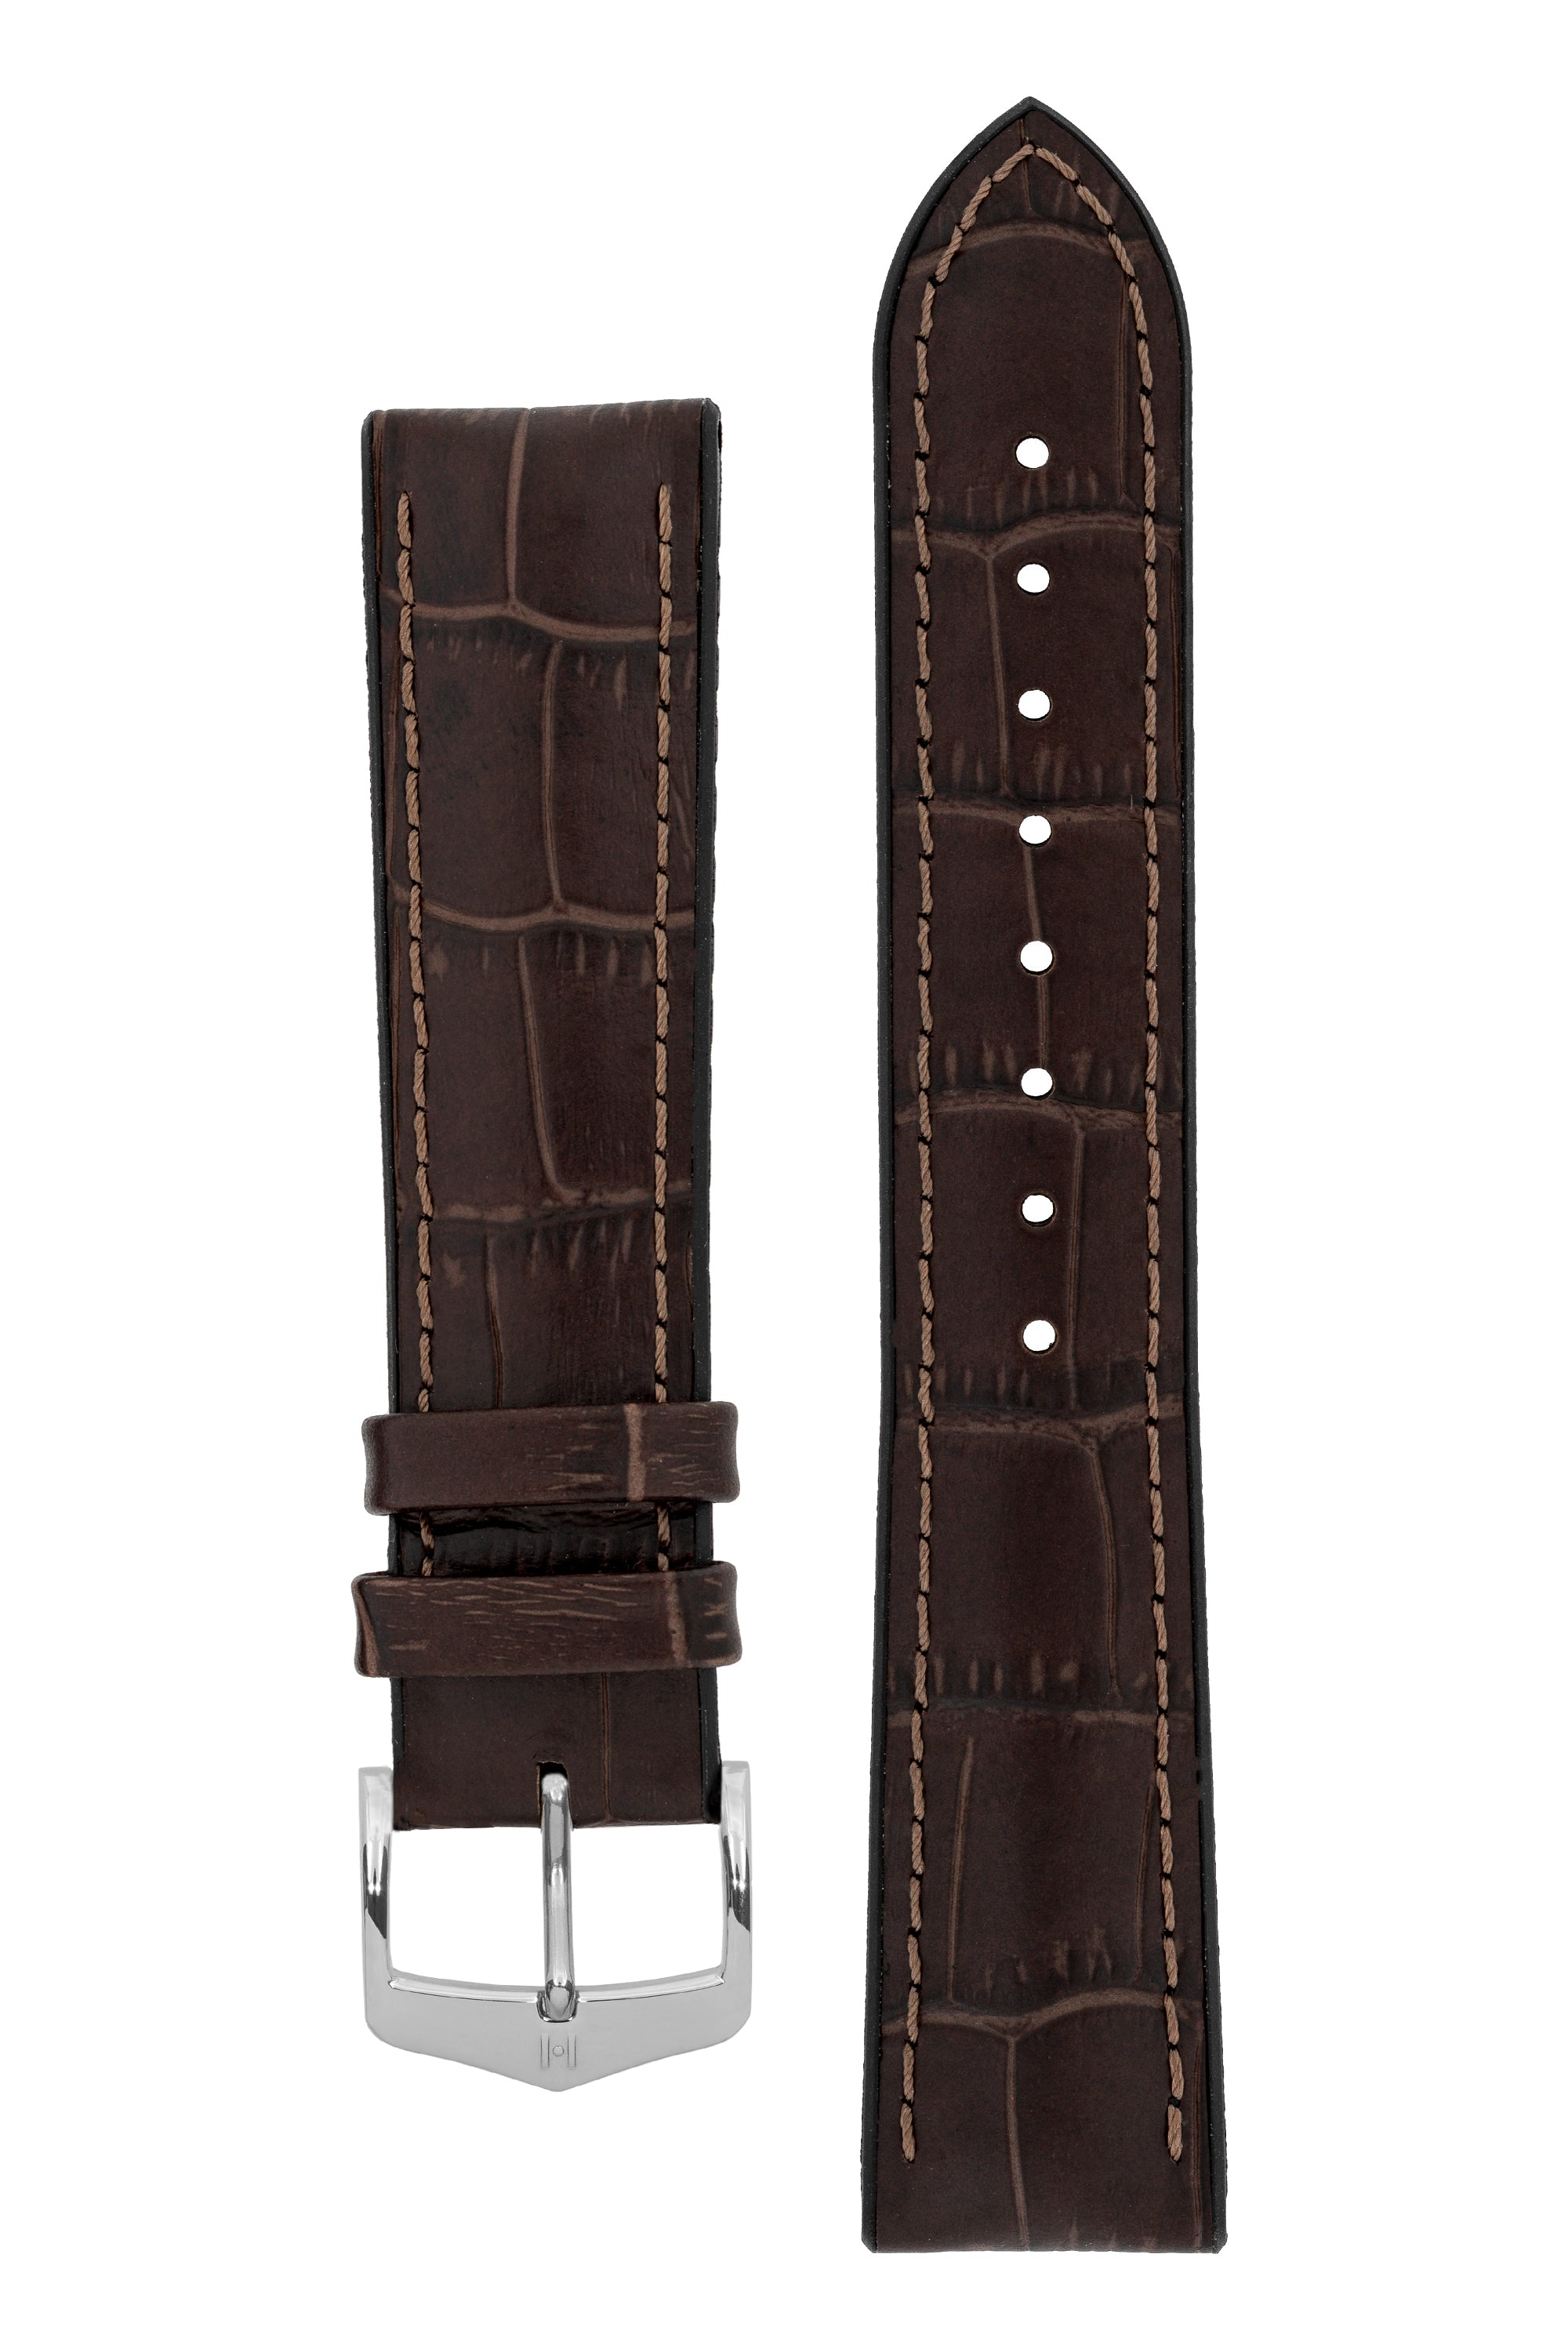 Hirsch PAUL Alligator Embossed Performance Watch Strap in BROWN